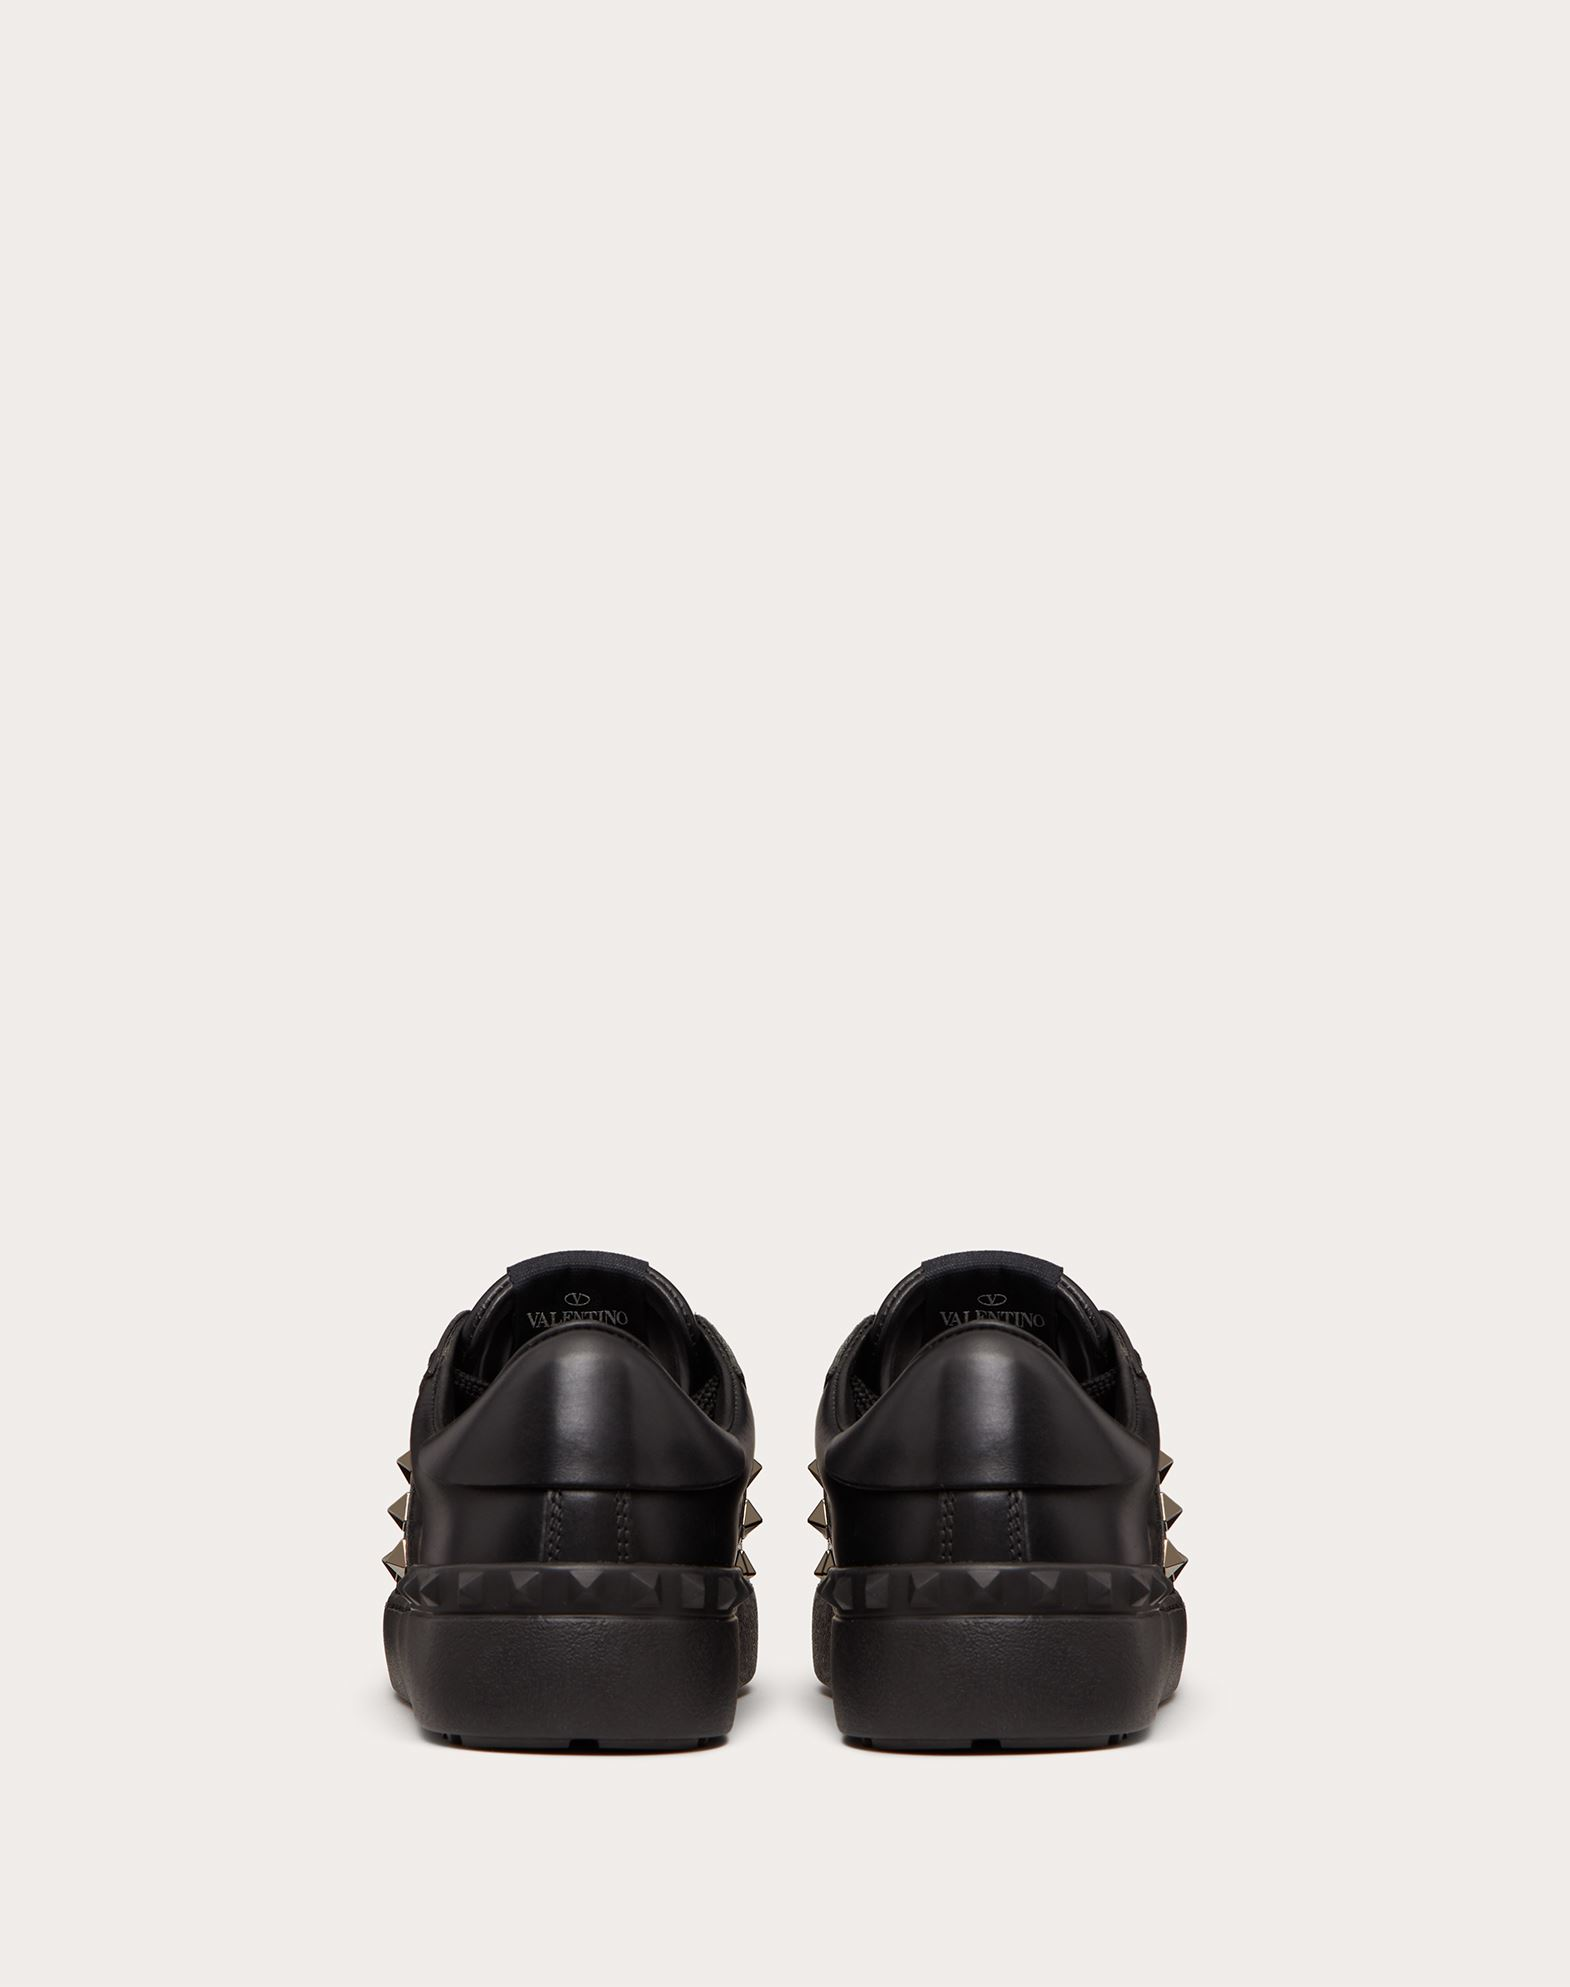 VALENTINO GARAVANI Rockstud Untitled Noir Sneaker LOW-TOP SNEAKERS D d